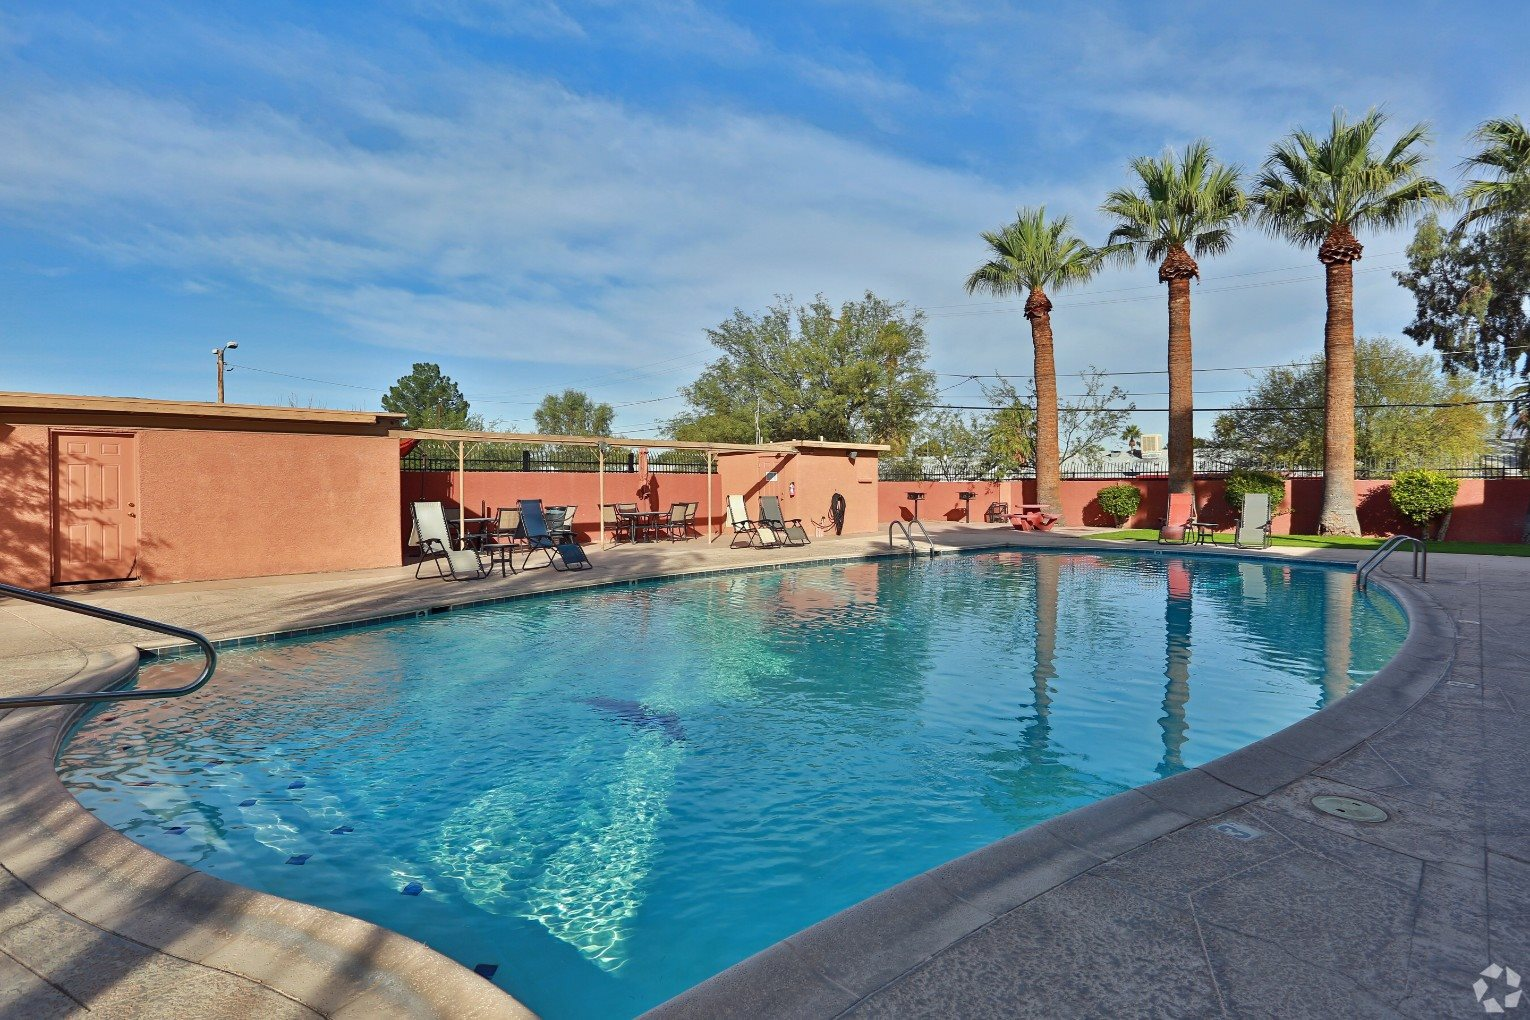 Pool & Pool Patio at San Simeon Apartments in Tucson AZ